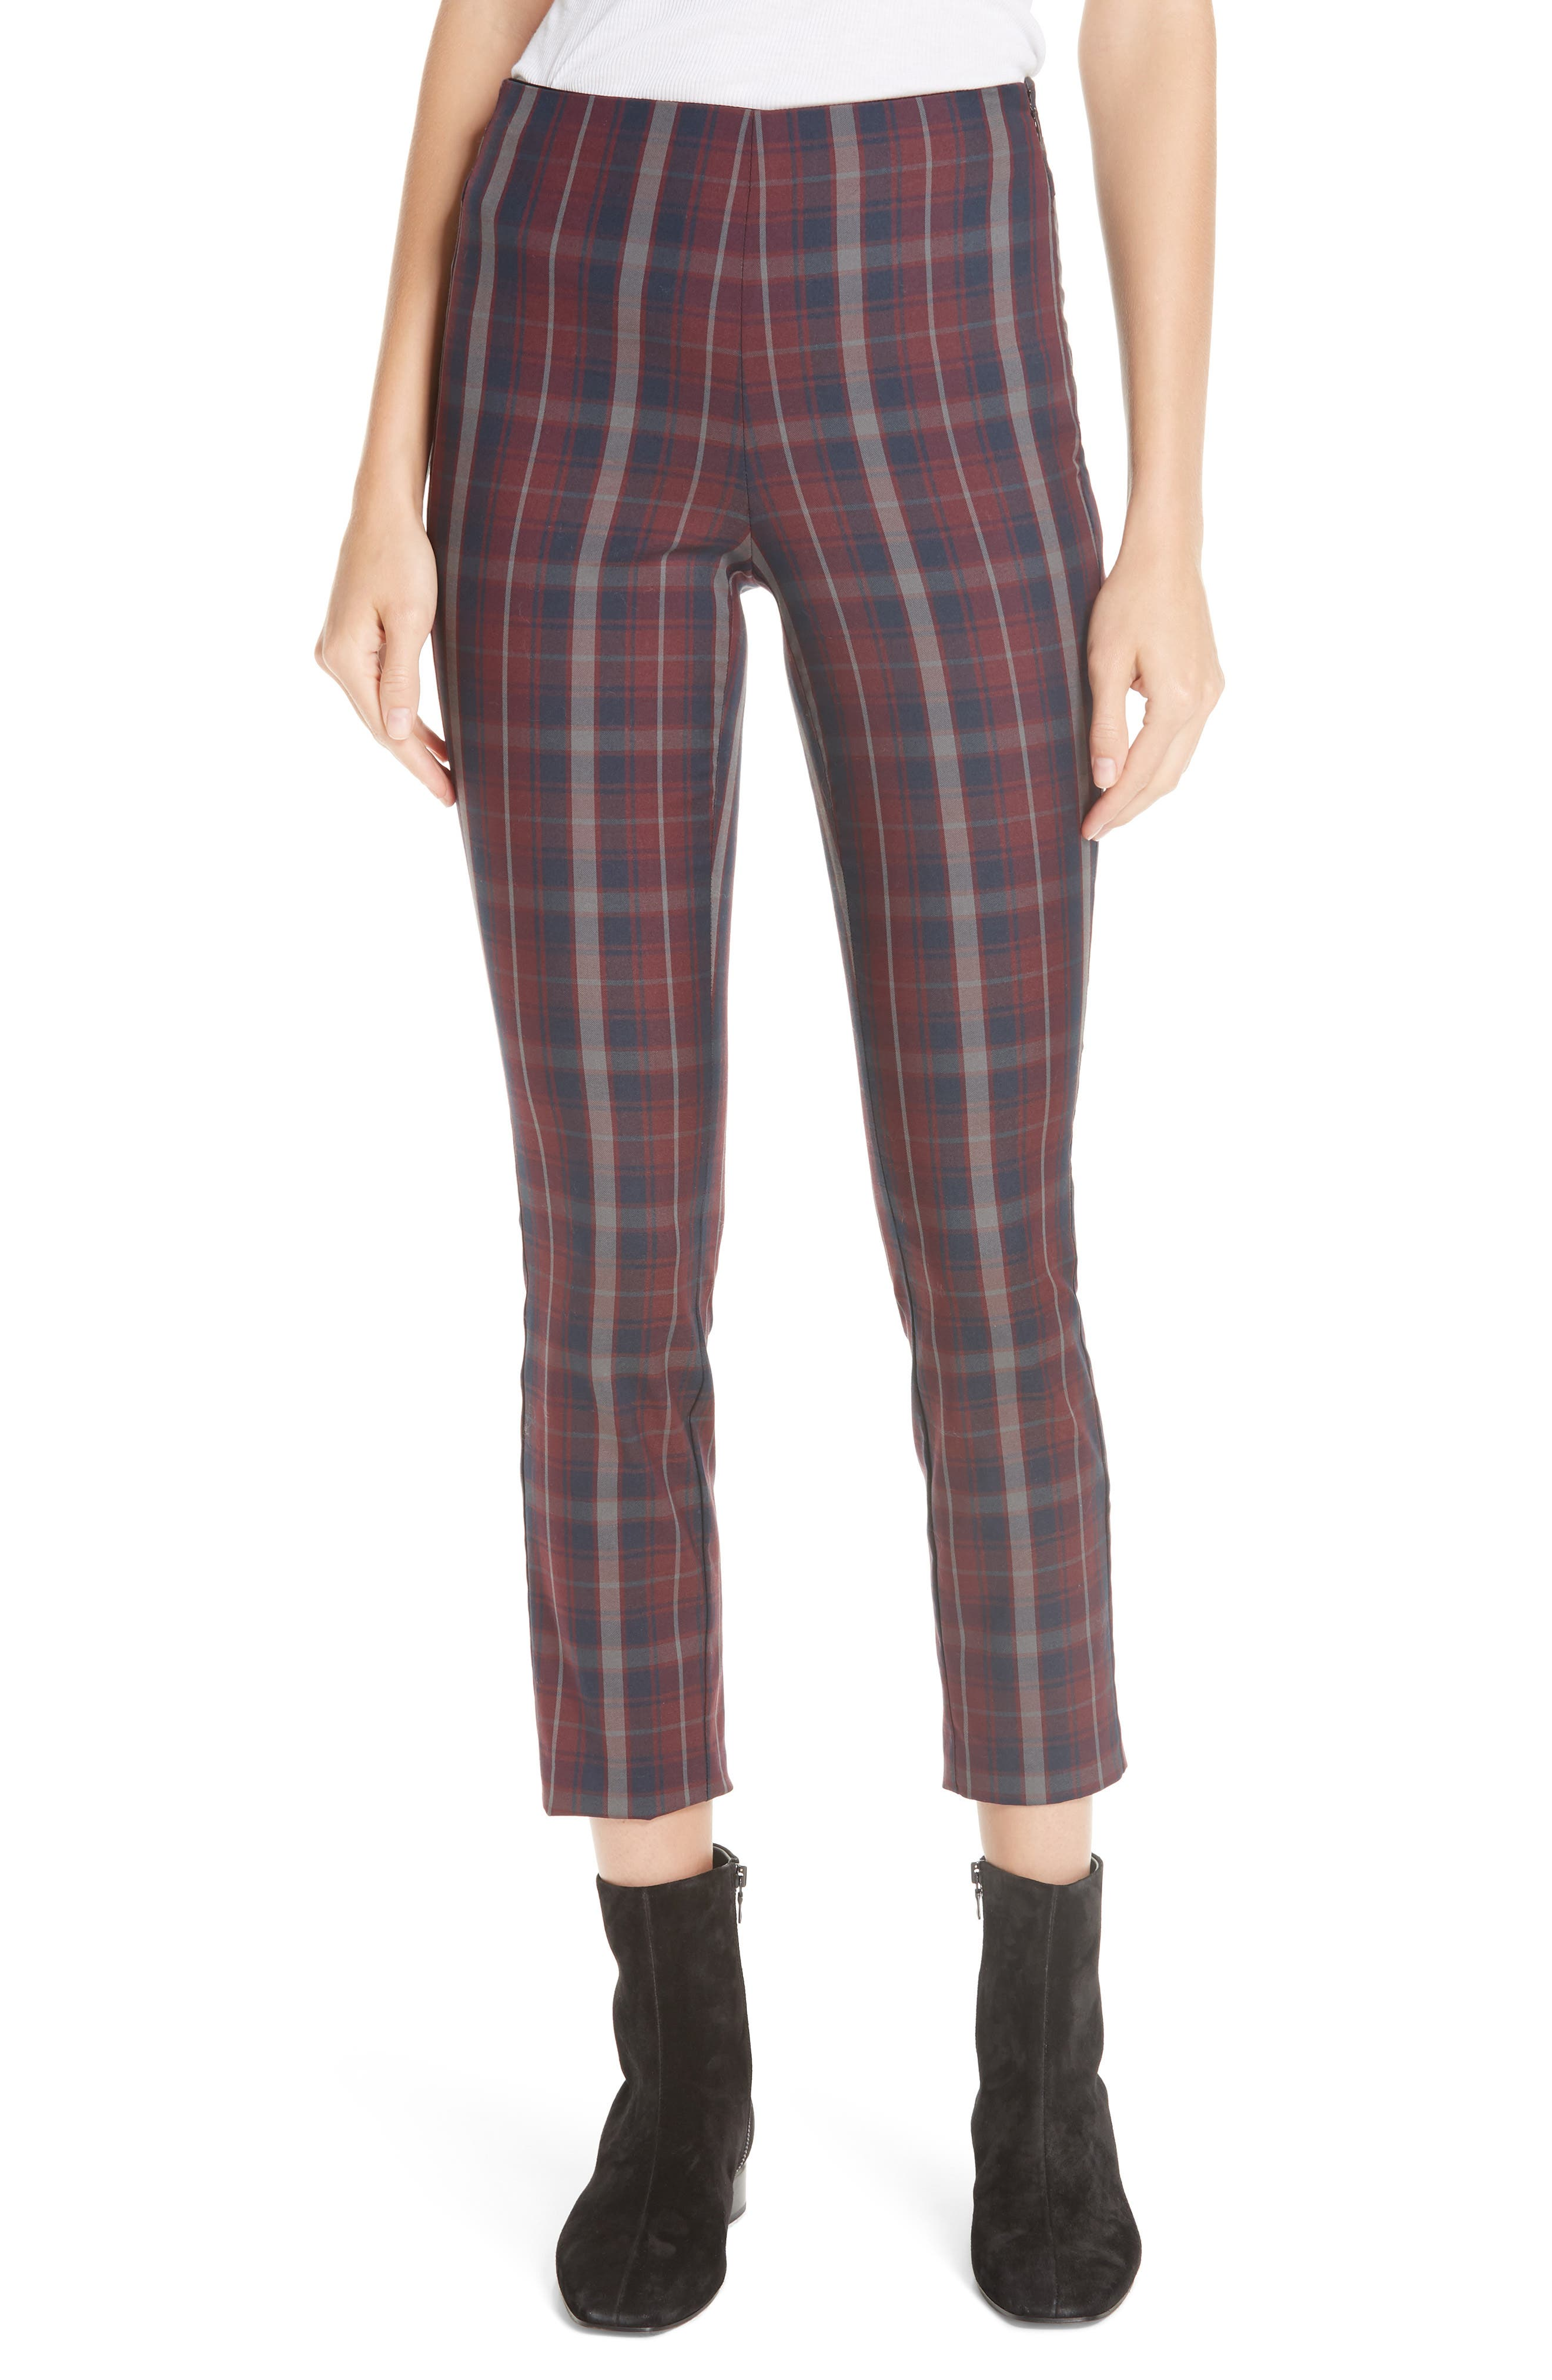 Simone Checked Cotton-Blend Pants - Wine Size 12